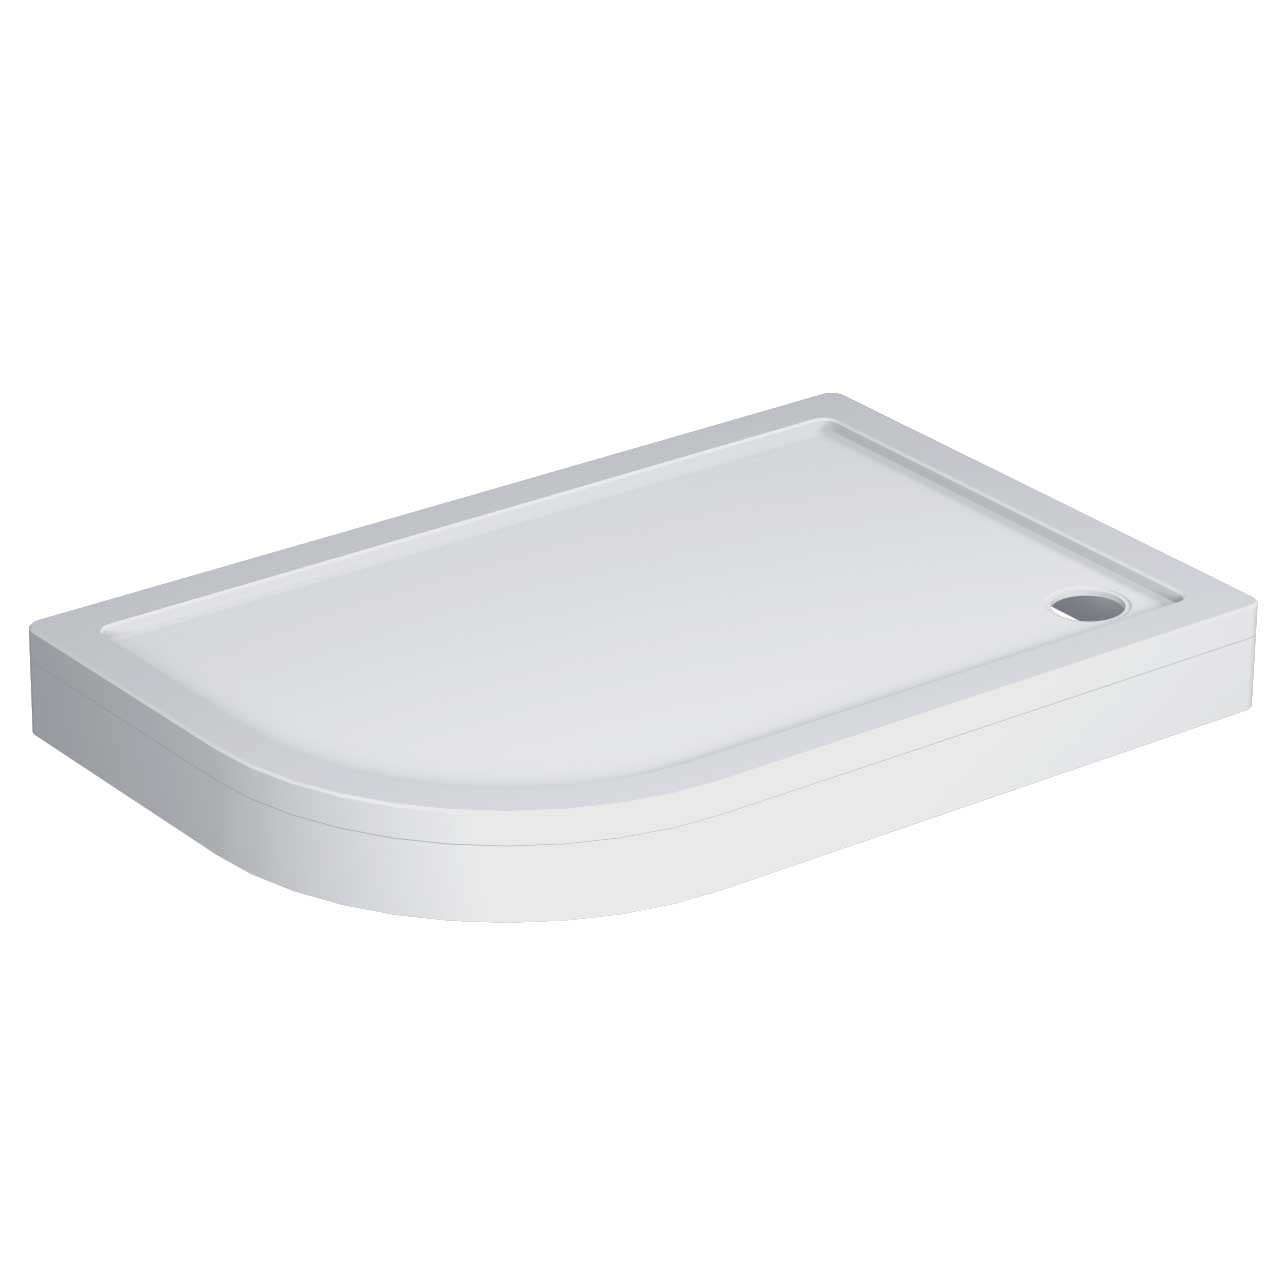 40mm Pearlstone 1200 x 800 Left Hand Offset Quadrant Shower Tray & Plinth Angled View